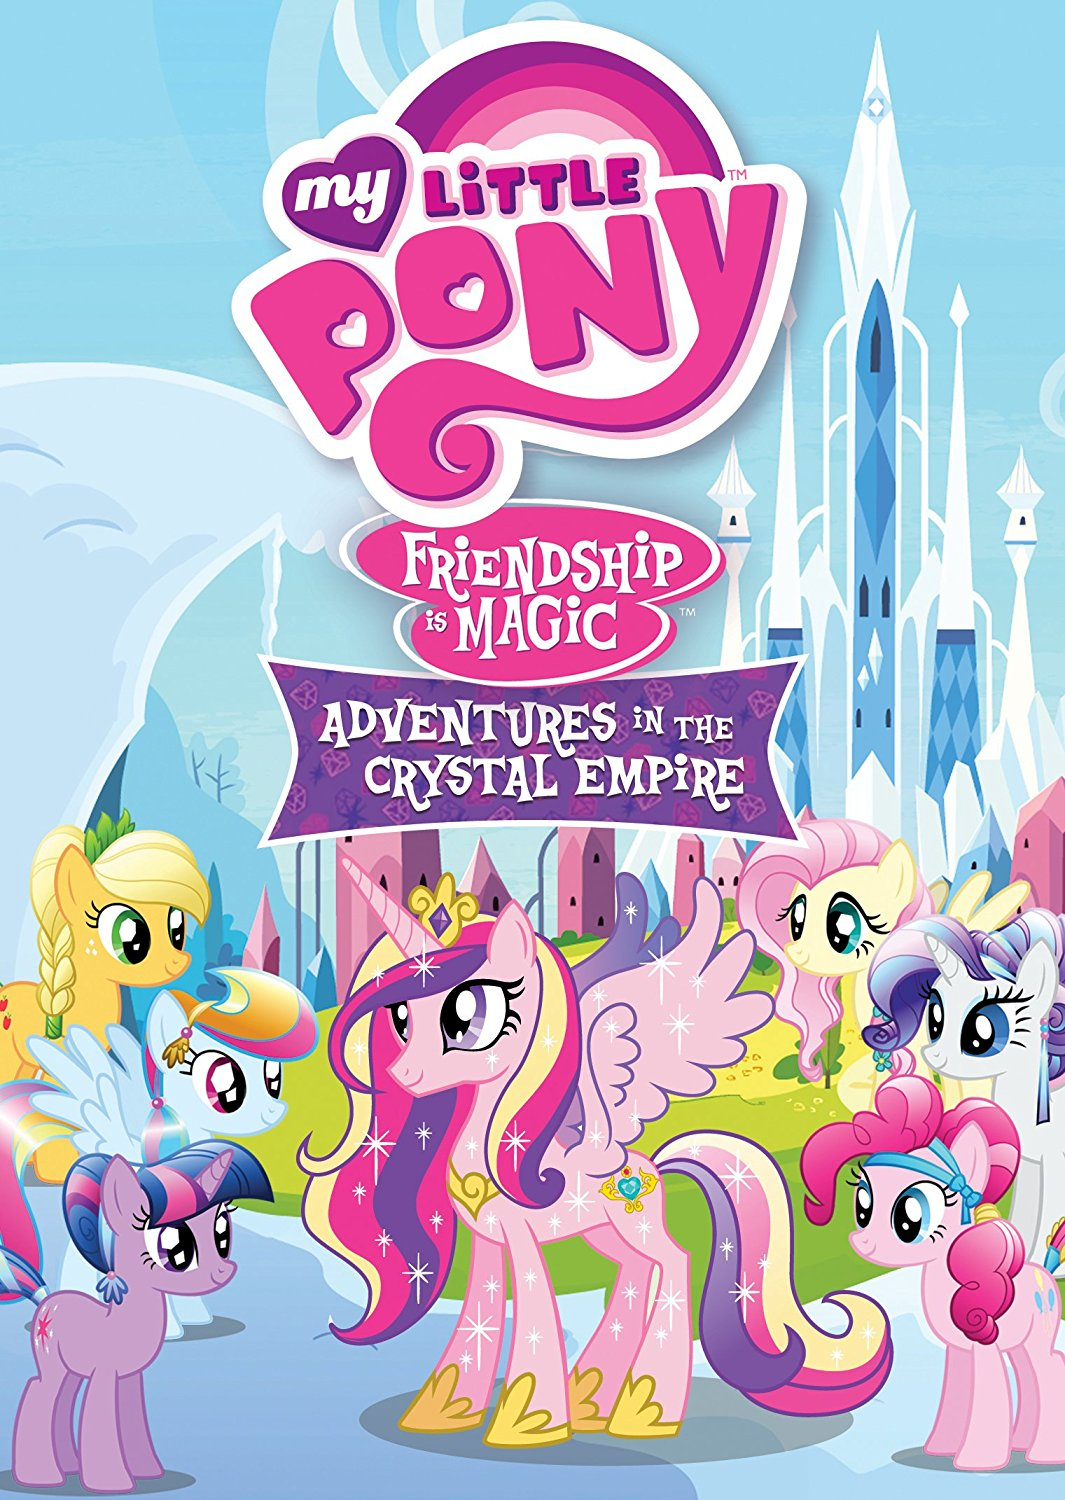 Crystal Ponies - My Little Pony Friendship is Magic Wiki